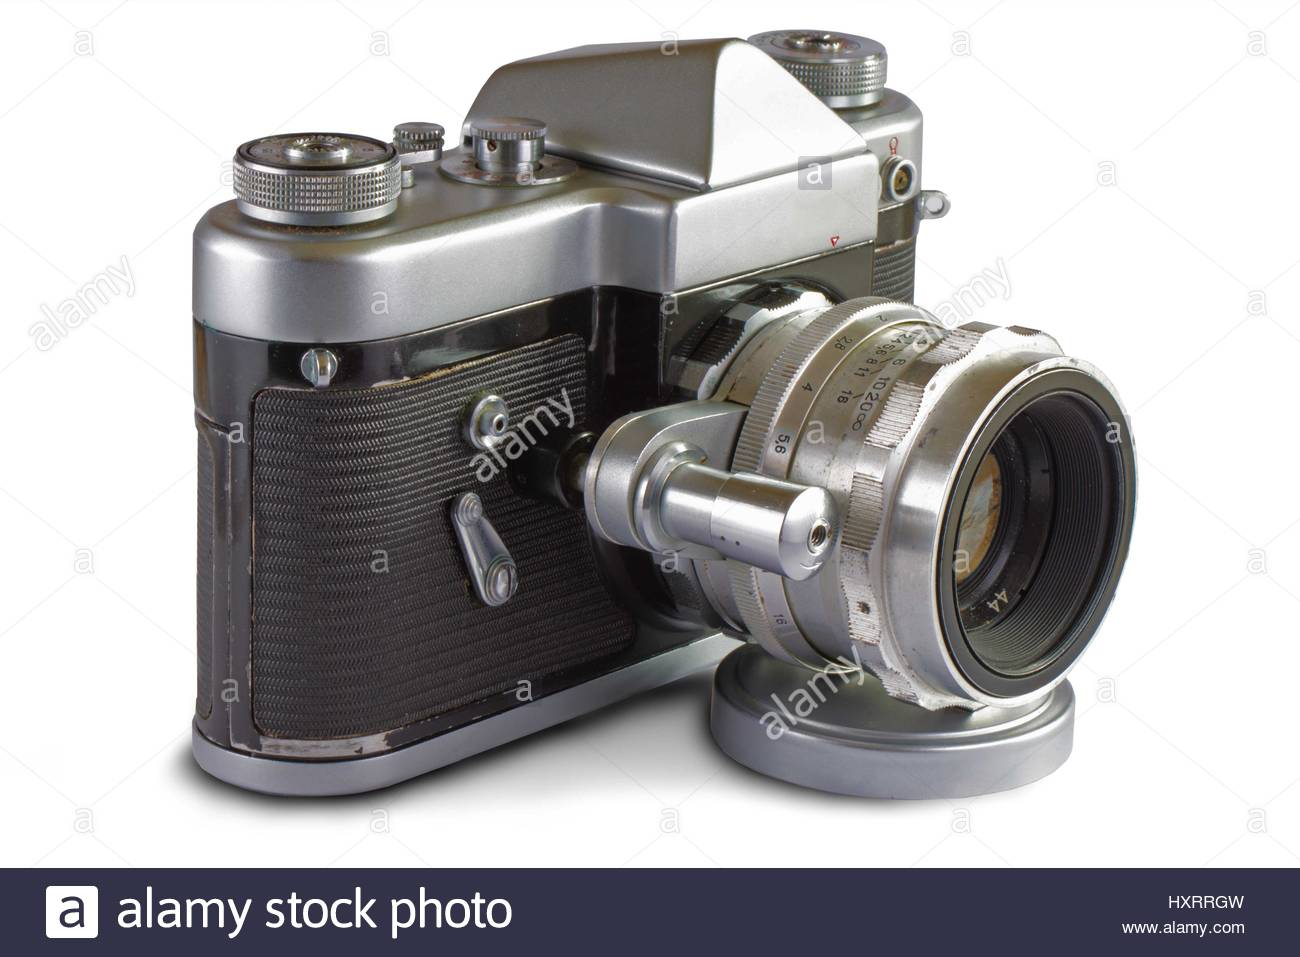 Soviet 35 mm Film SLR Photo Camera with automated diaphragm option (1950's) - Stock Image